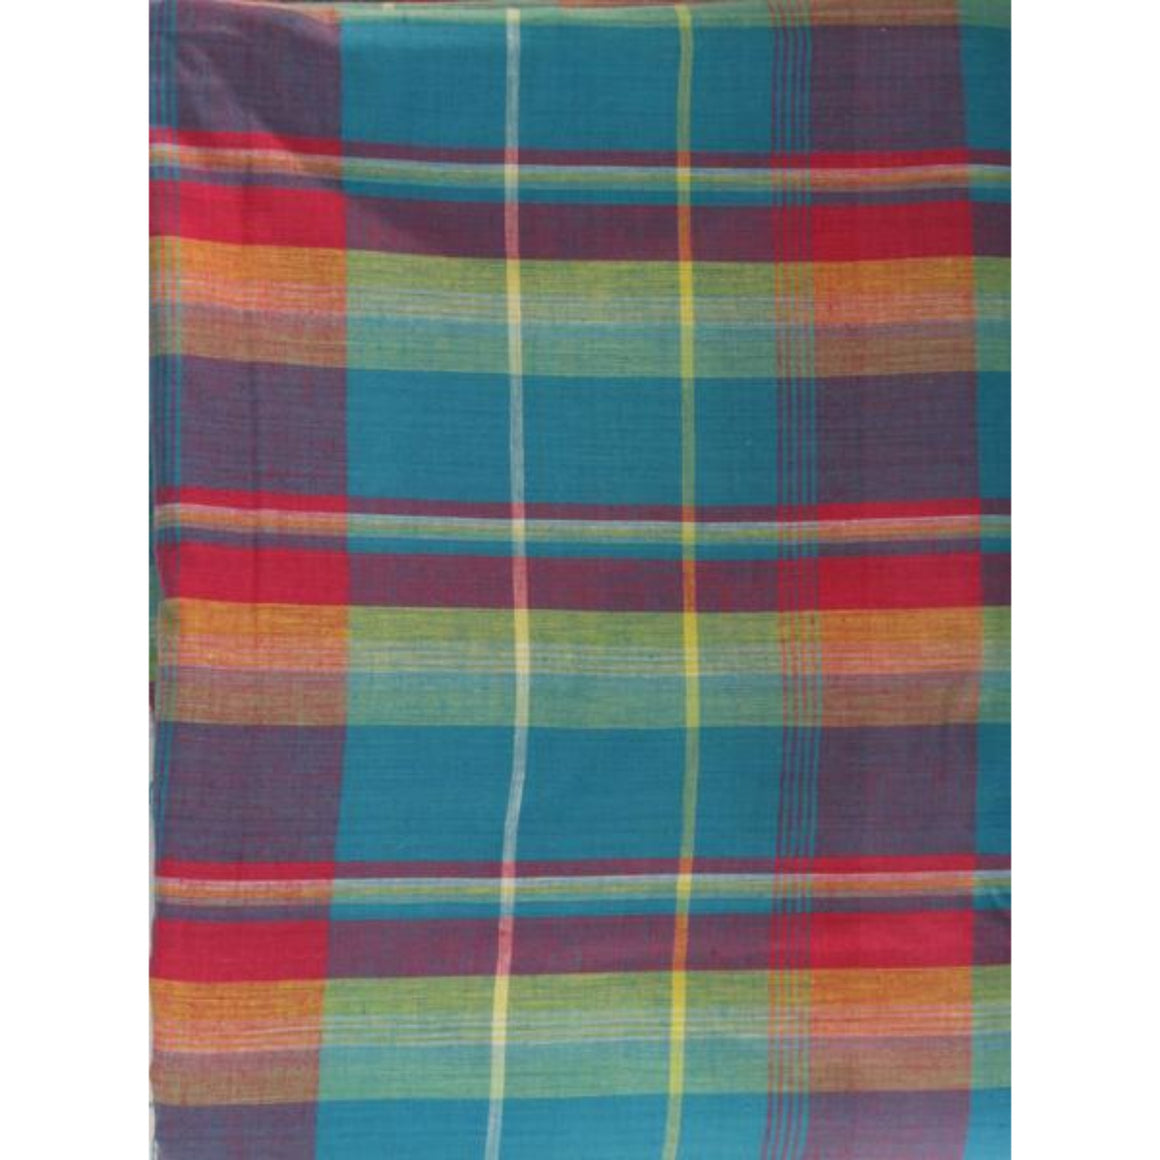 Teal/ Hot Pink/& Orange India Madras Plaid Cloth Fabric